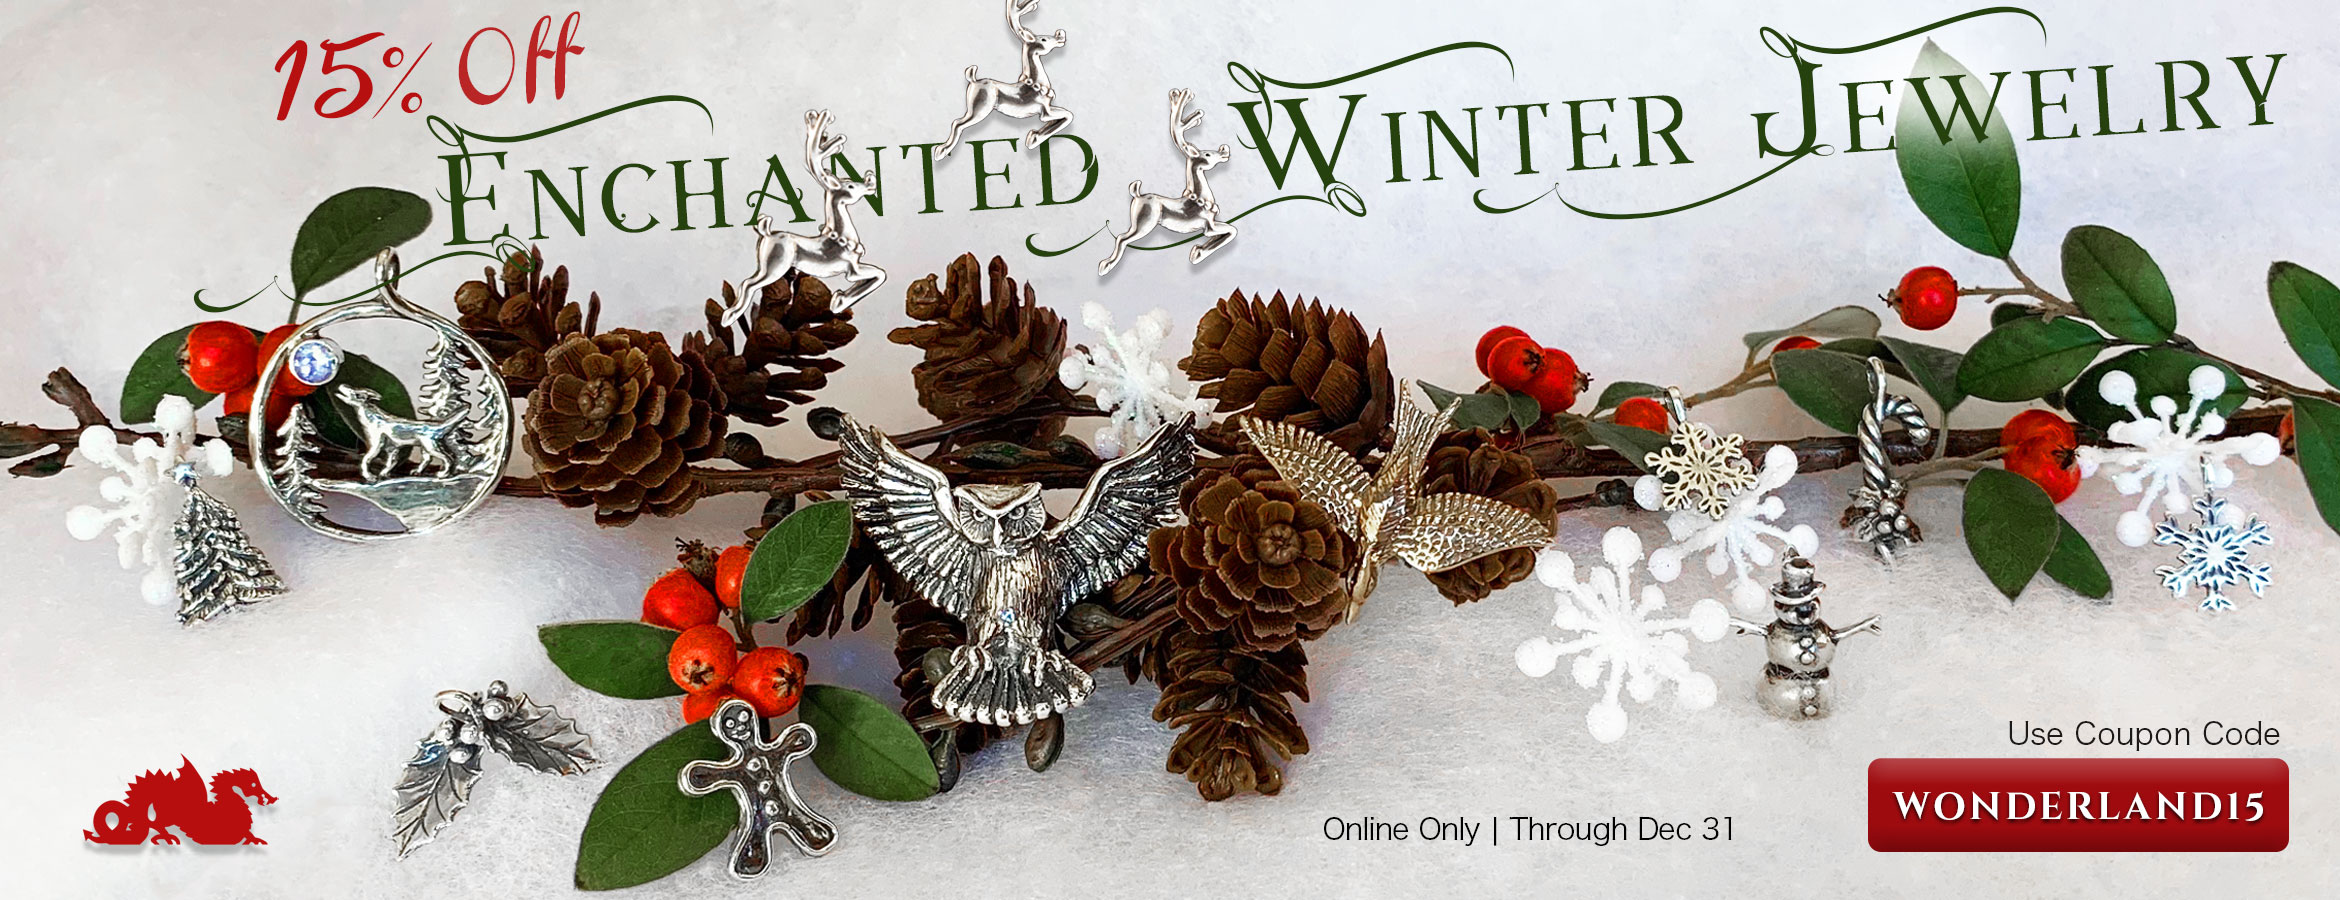 enchantedwinterjewelry.jpg